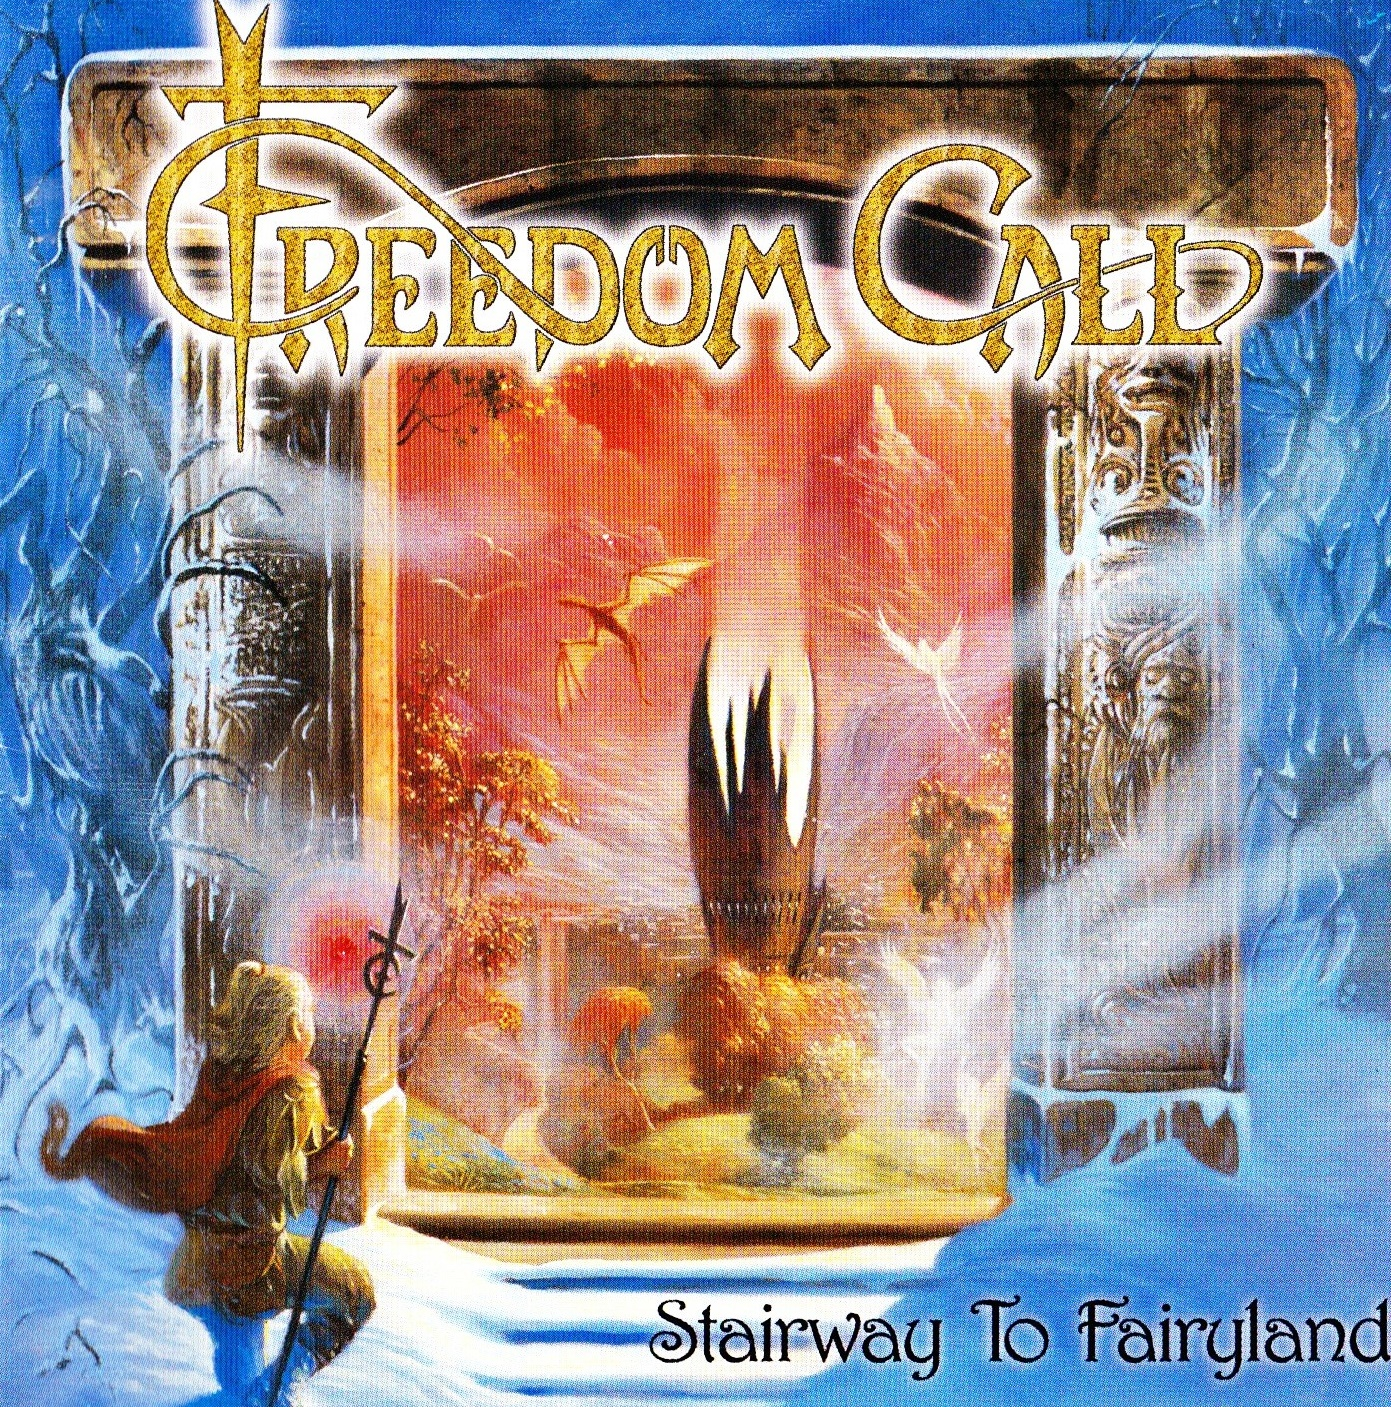 Freedom Call — Stairway To Fairyland (1999)